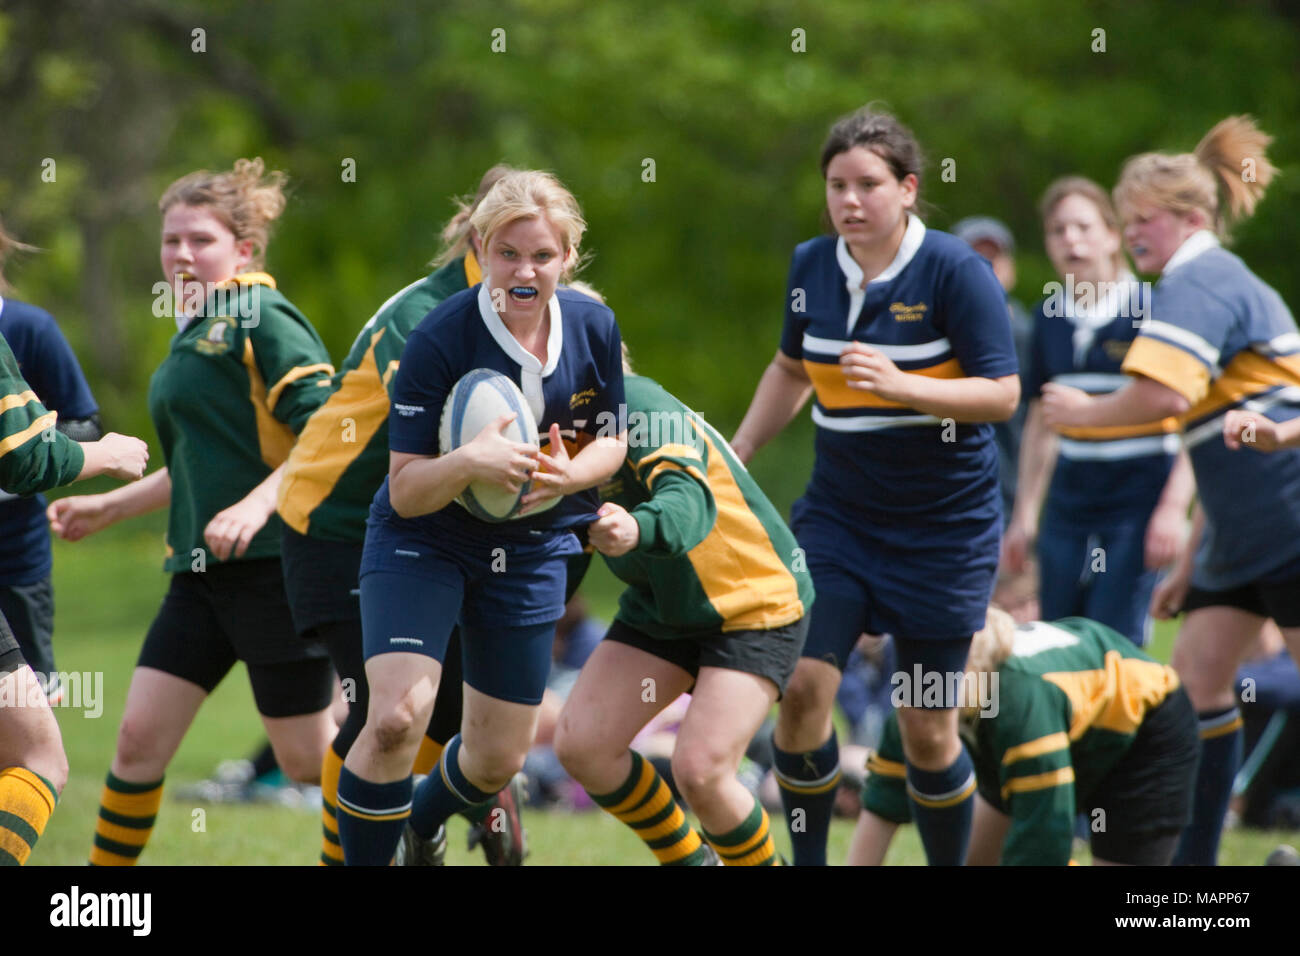 girl running with ball in rugby game - Stock Image